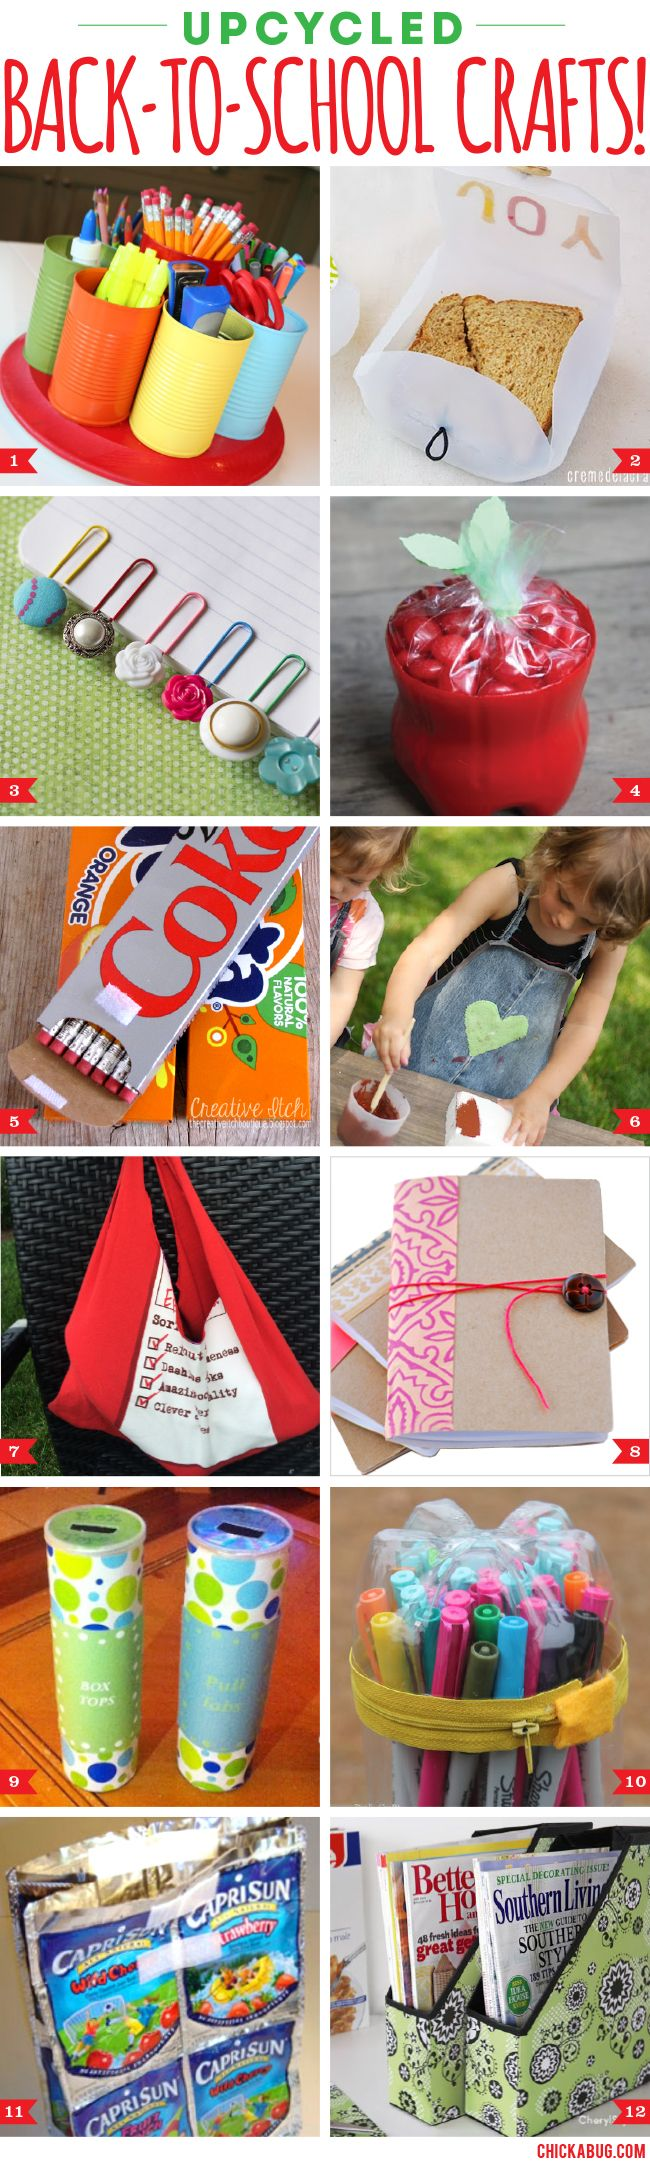 Upcycled Back-To-School Crafts